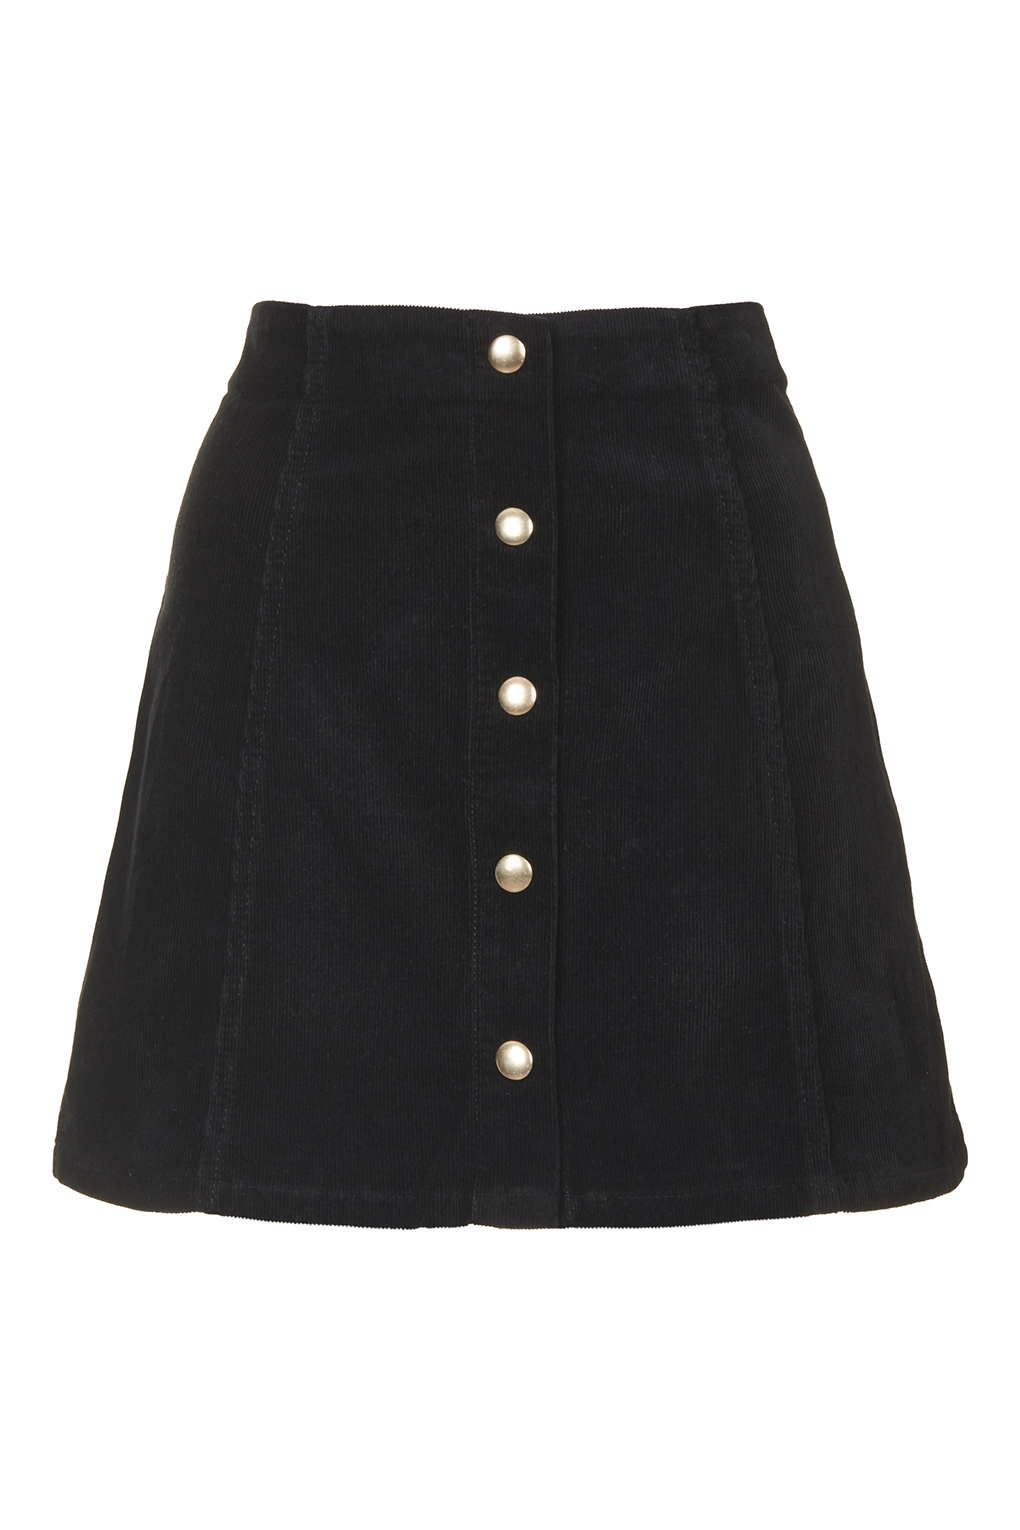 Topshop Cord Popper A-line Skirt in Black | Lyst